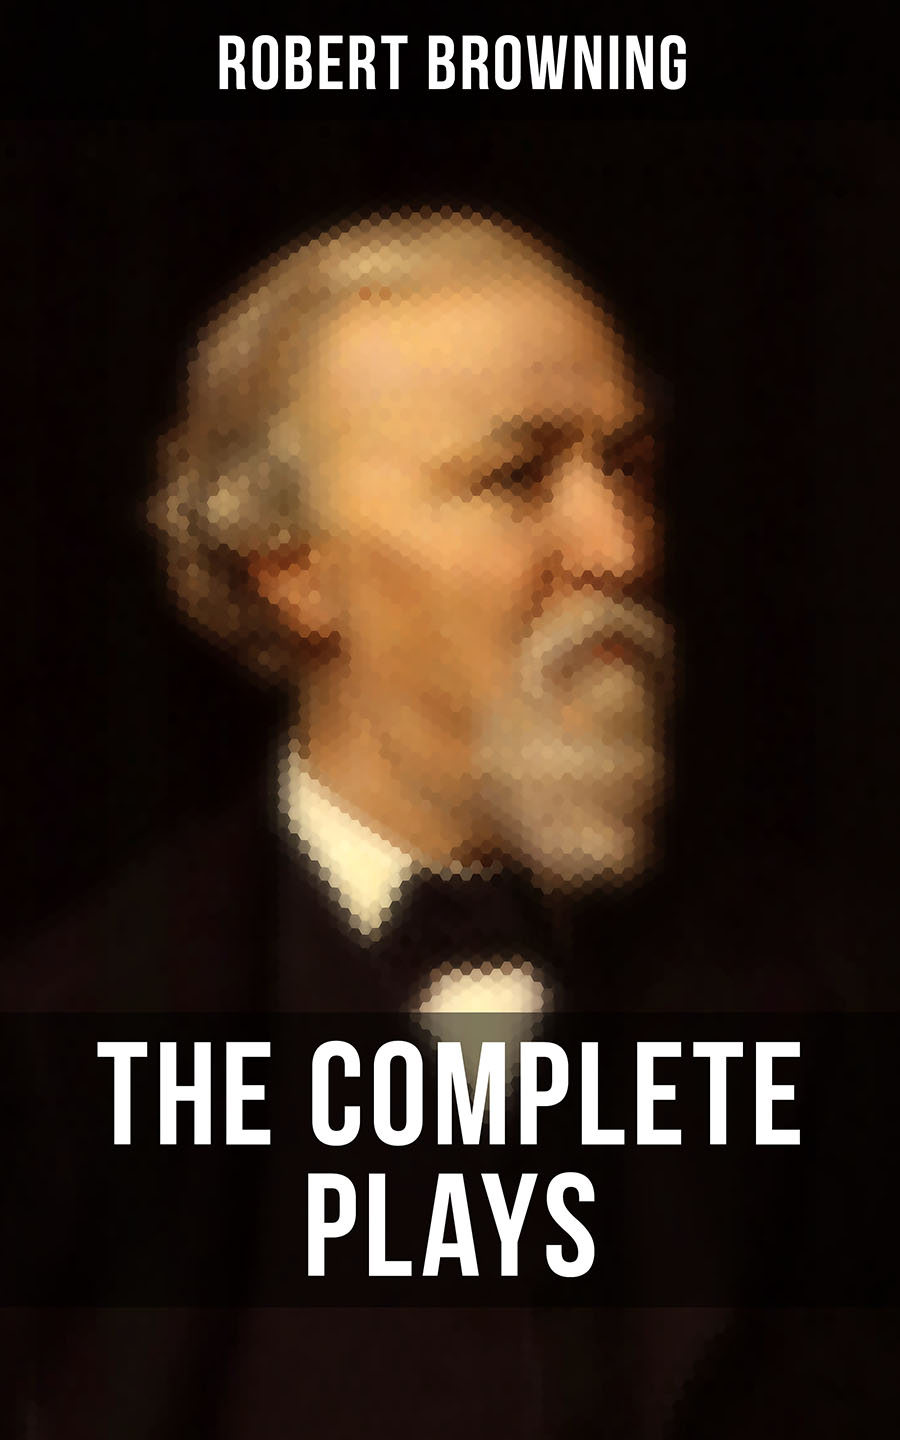 Robert Browning THE COMPLETE PLAYS OF ROBERT BROWNING browning lm339 d 5 20 kb20